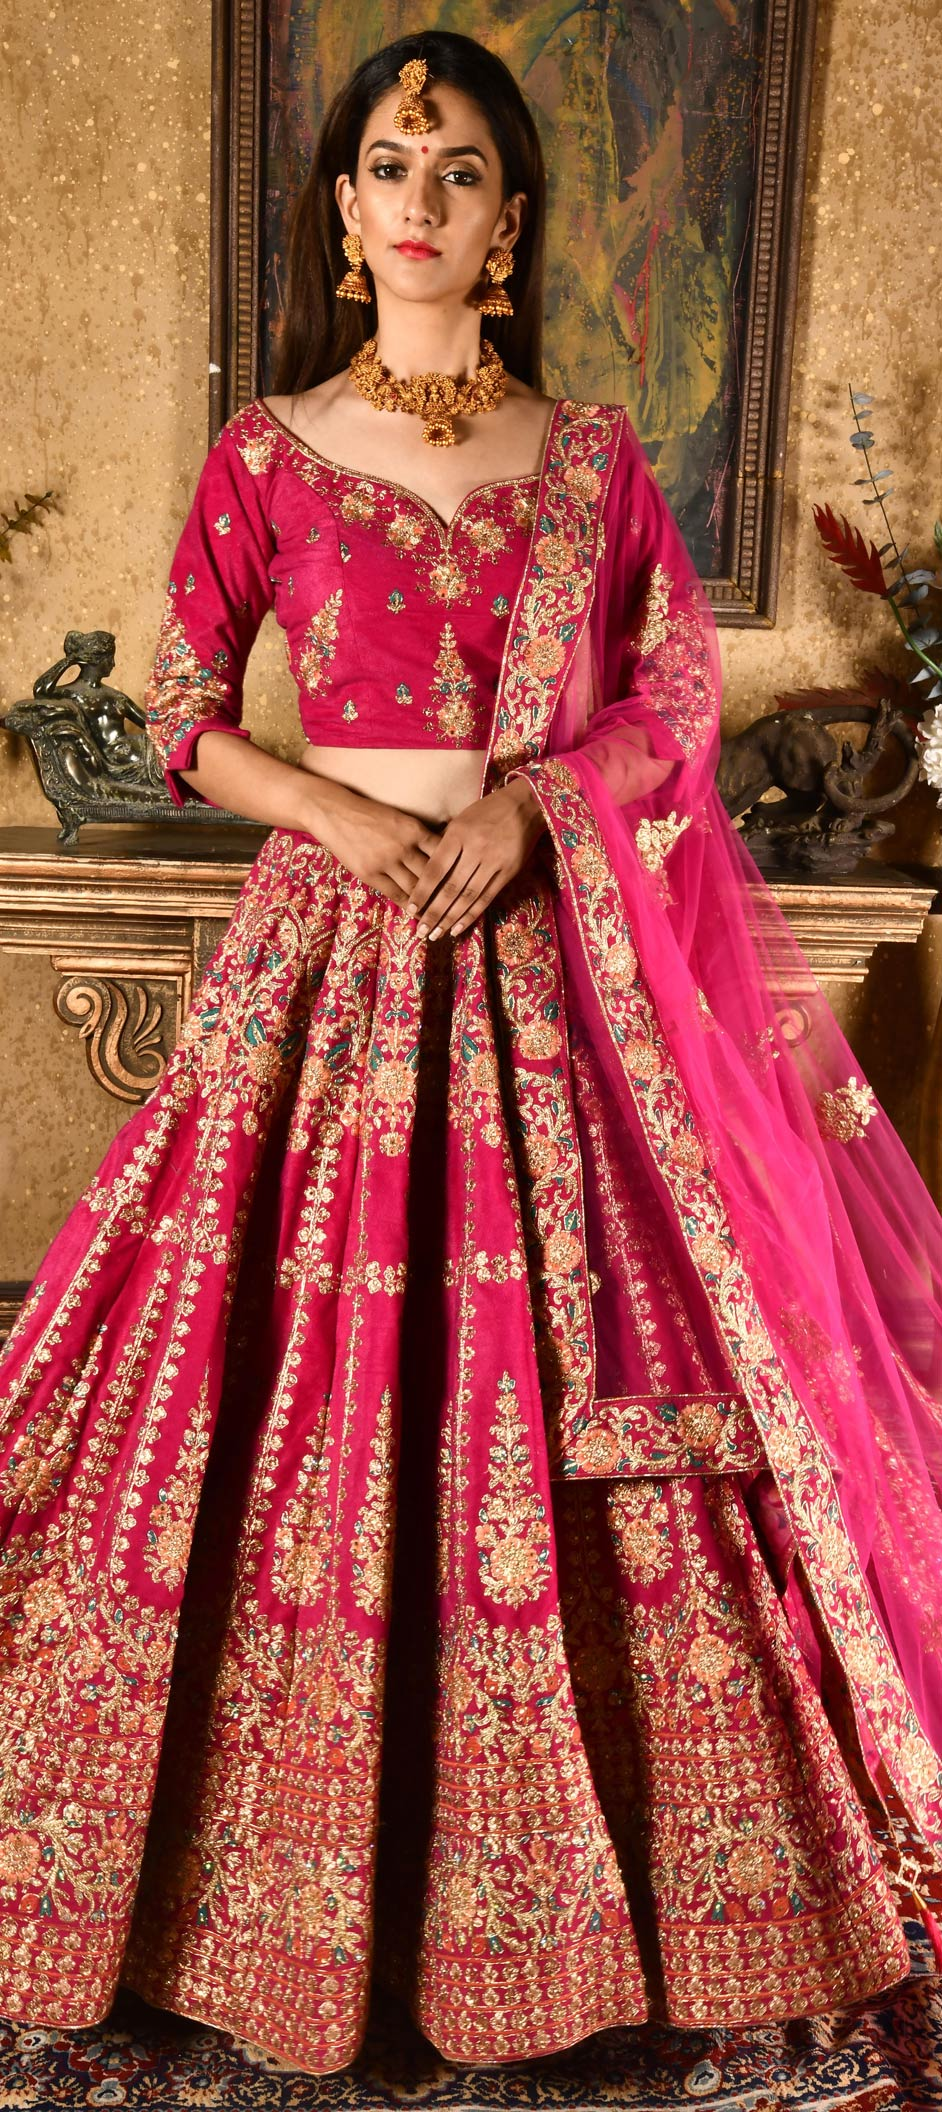 5a0623a8dbe96 Bridal, Mehendi Sangeet, Reception, Wedding Pink and Majenta color ...